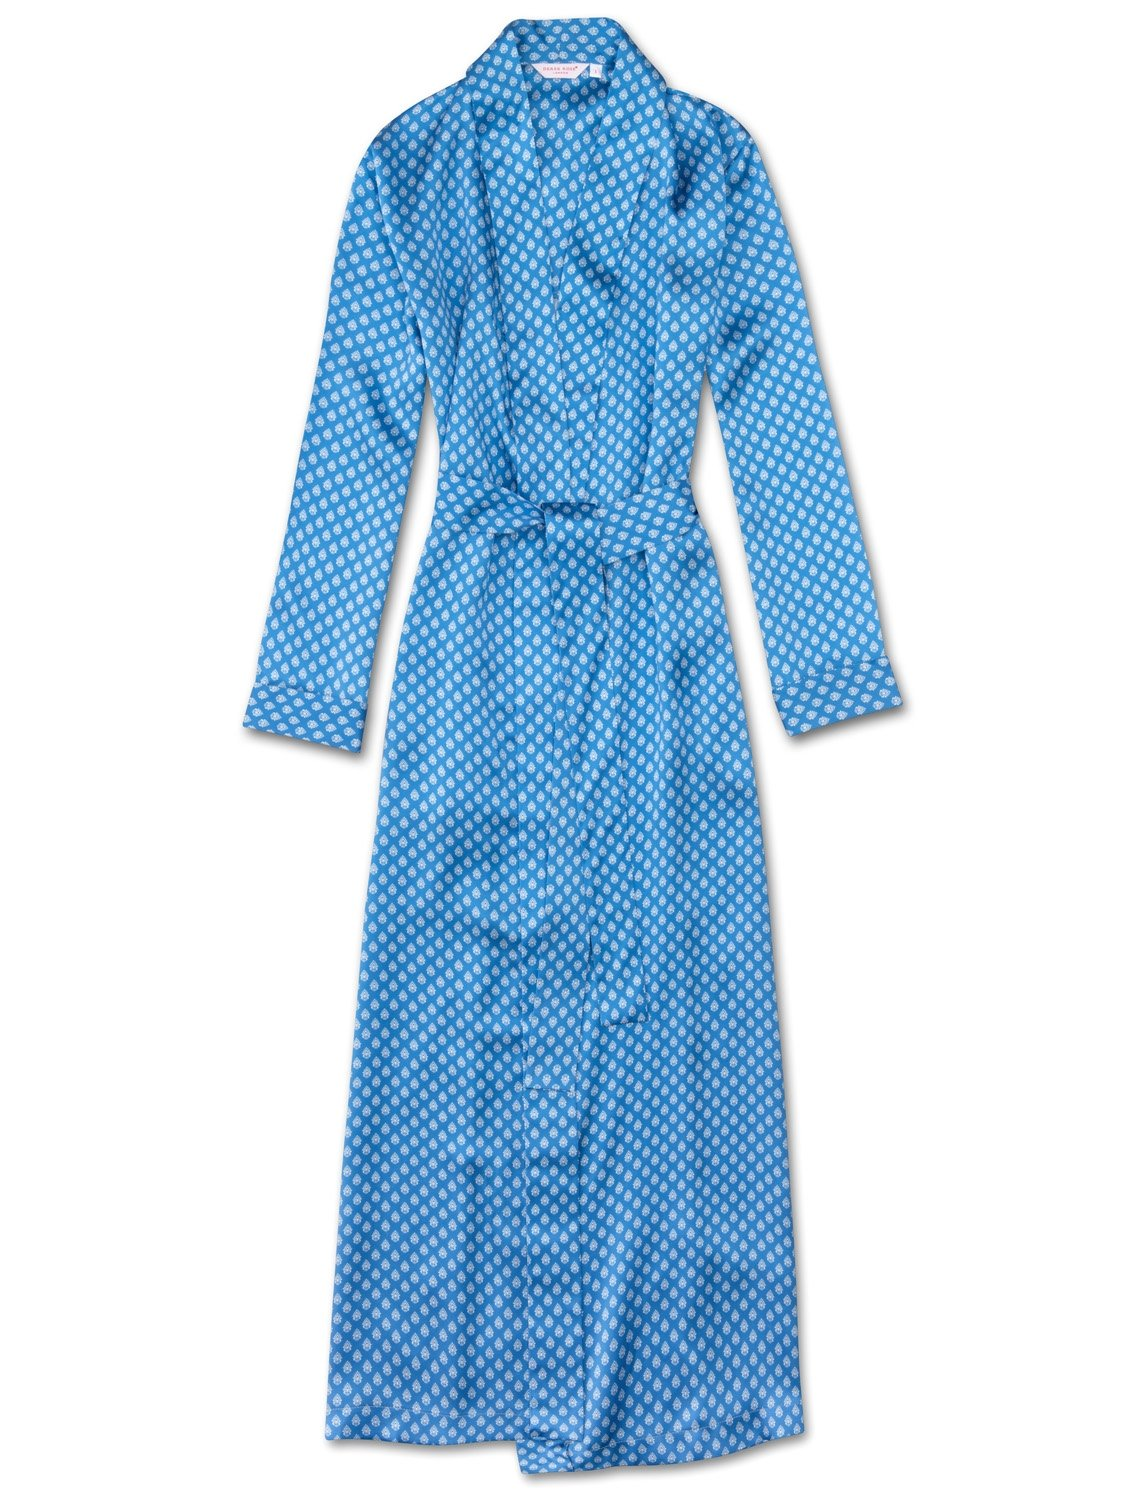 Women's Full Length Dressing Gown Brindisi 20 Pure Silk Satin Blue